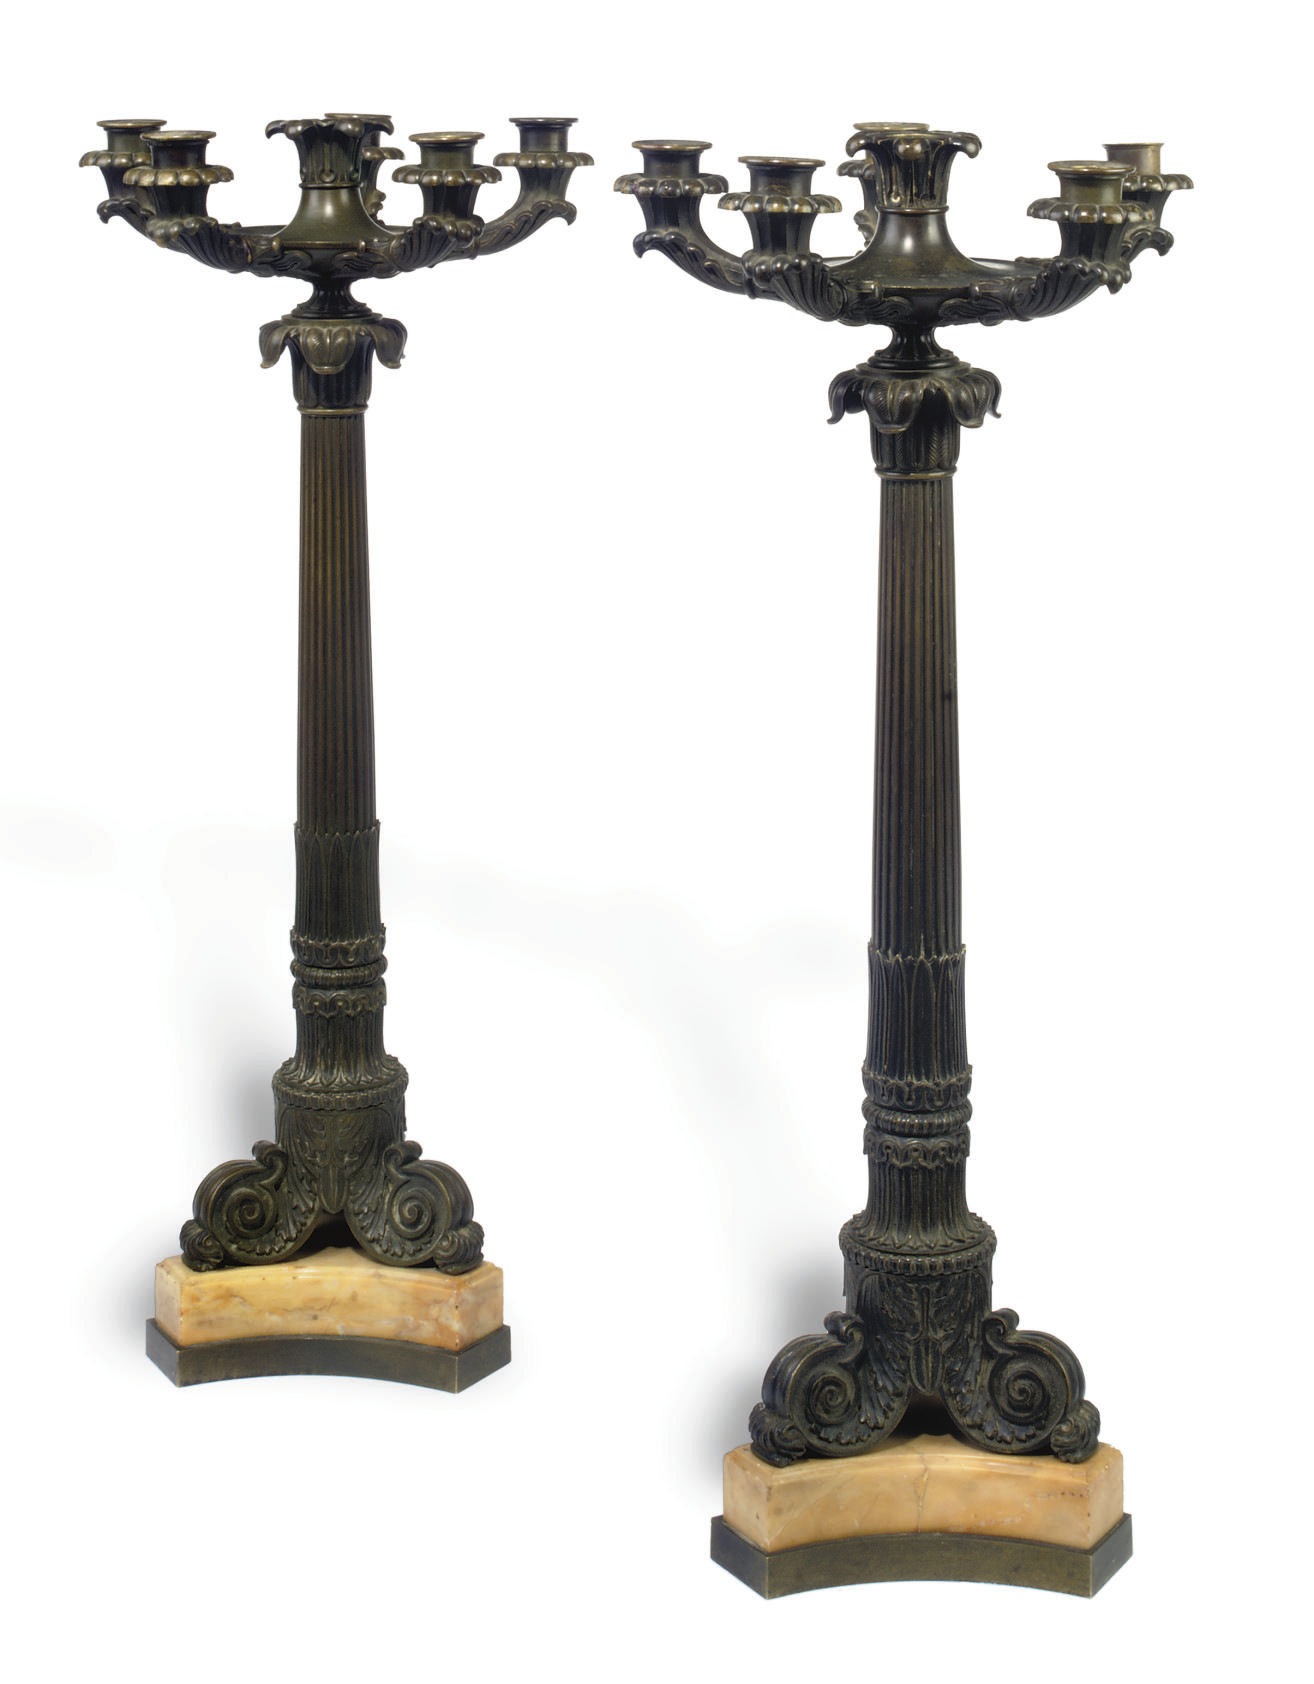 A PAIR OF CHARLES X BRONZE SIX